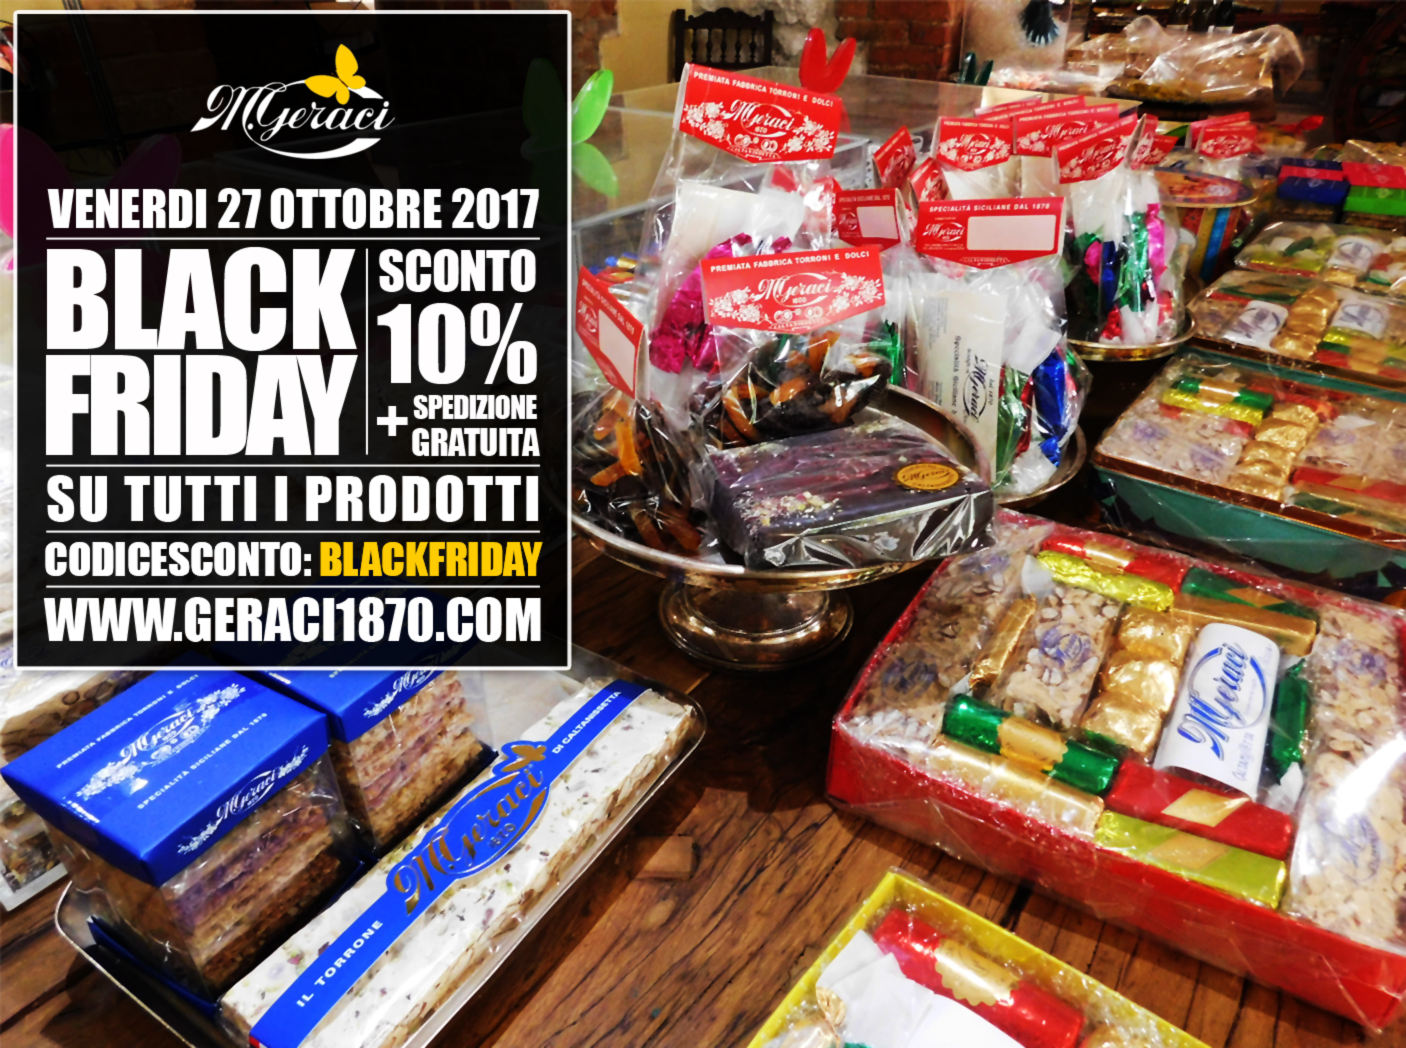 torronificio geraci - blackfriday 27 ott 2017